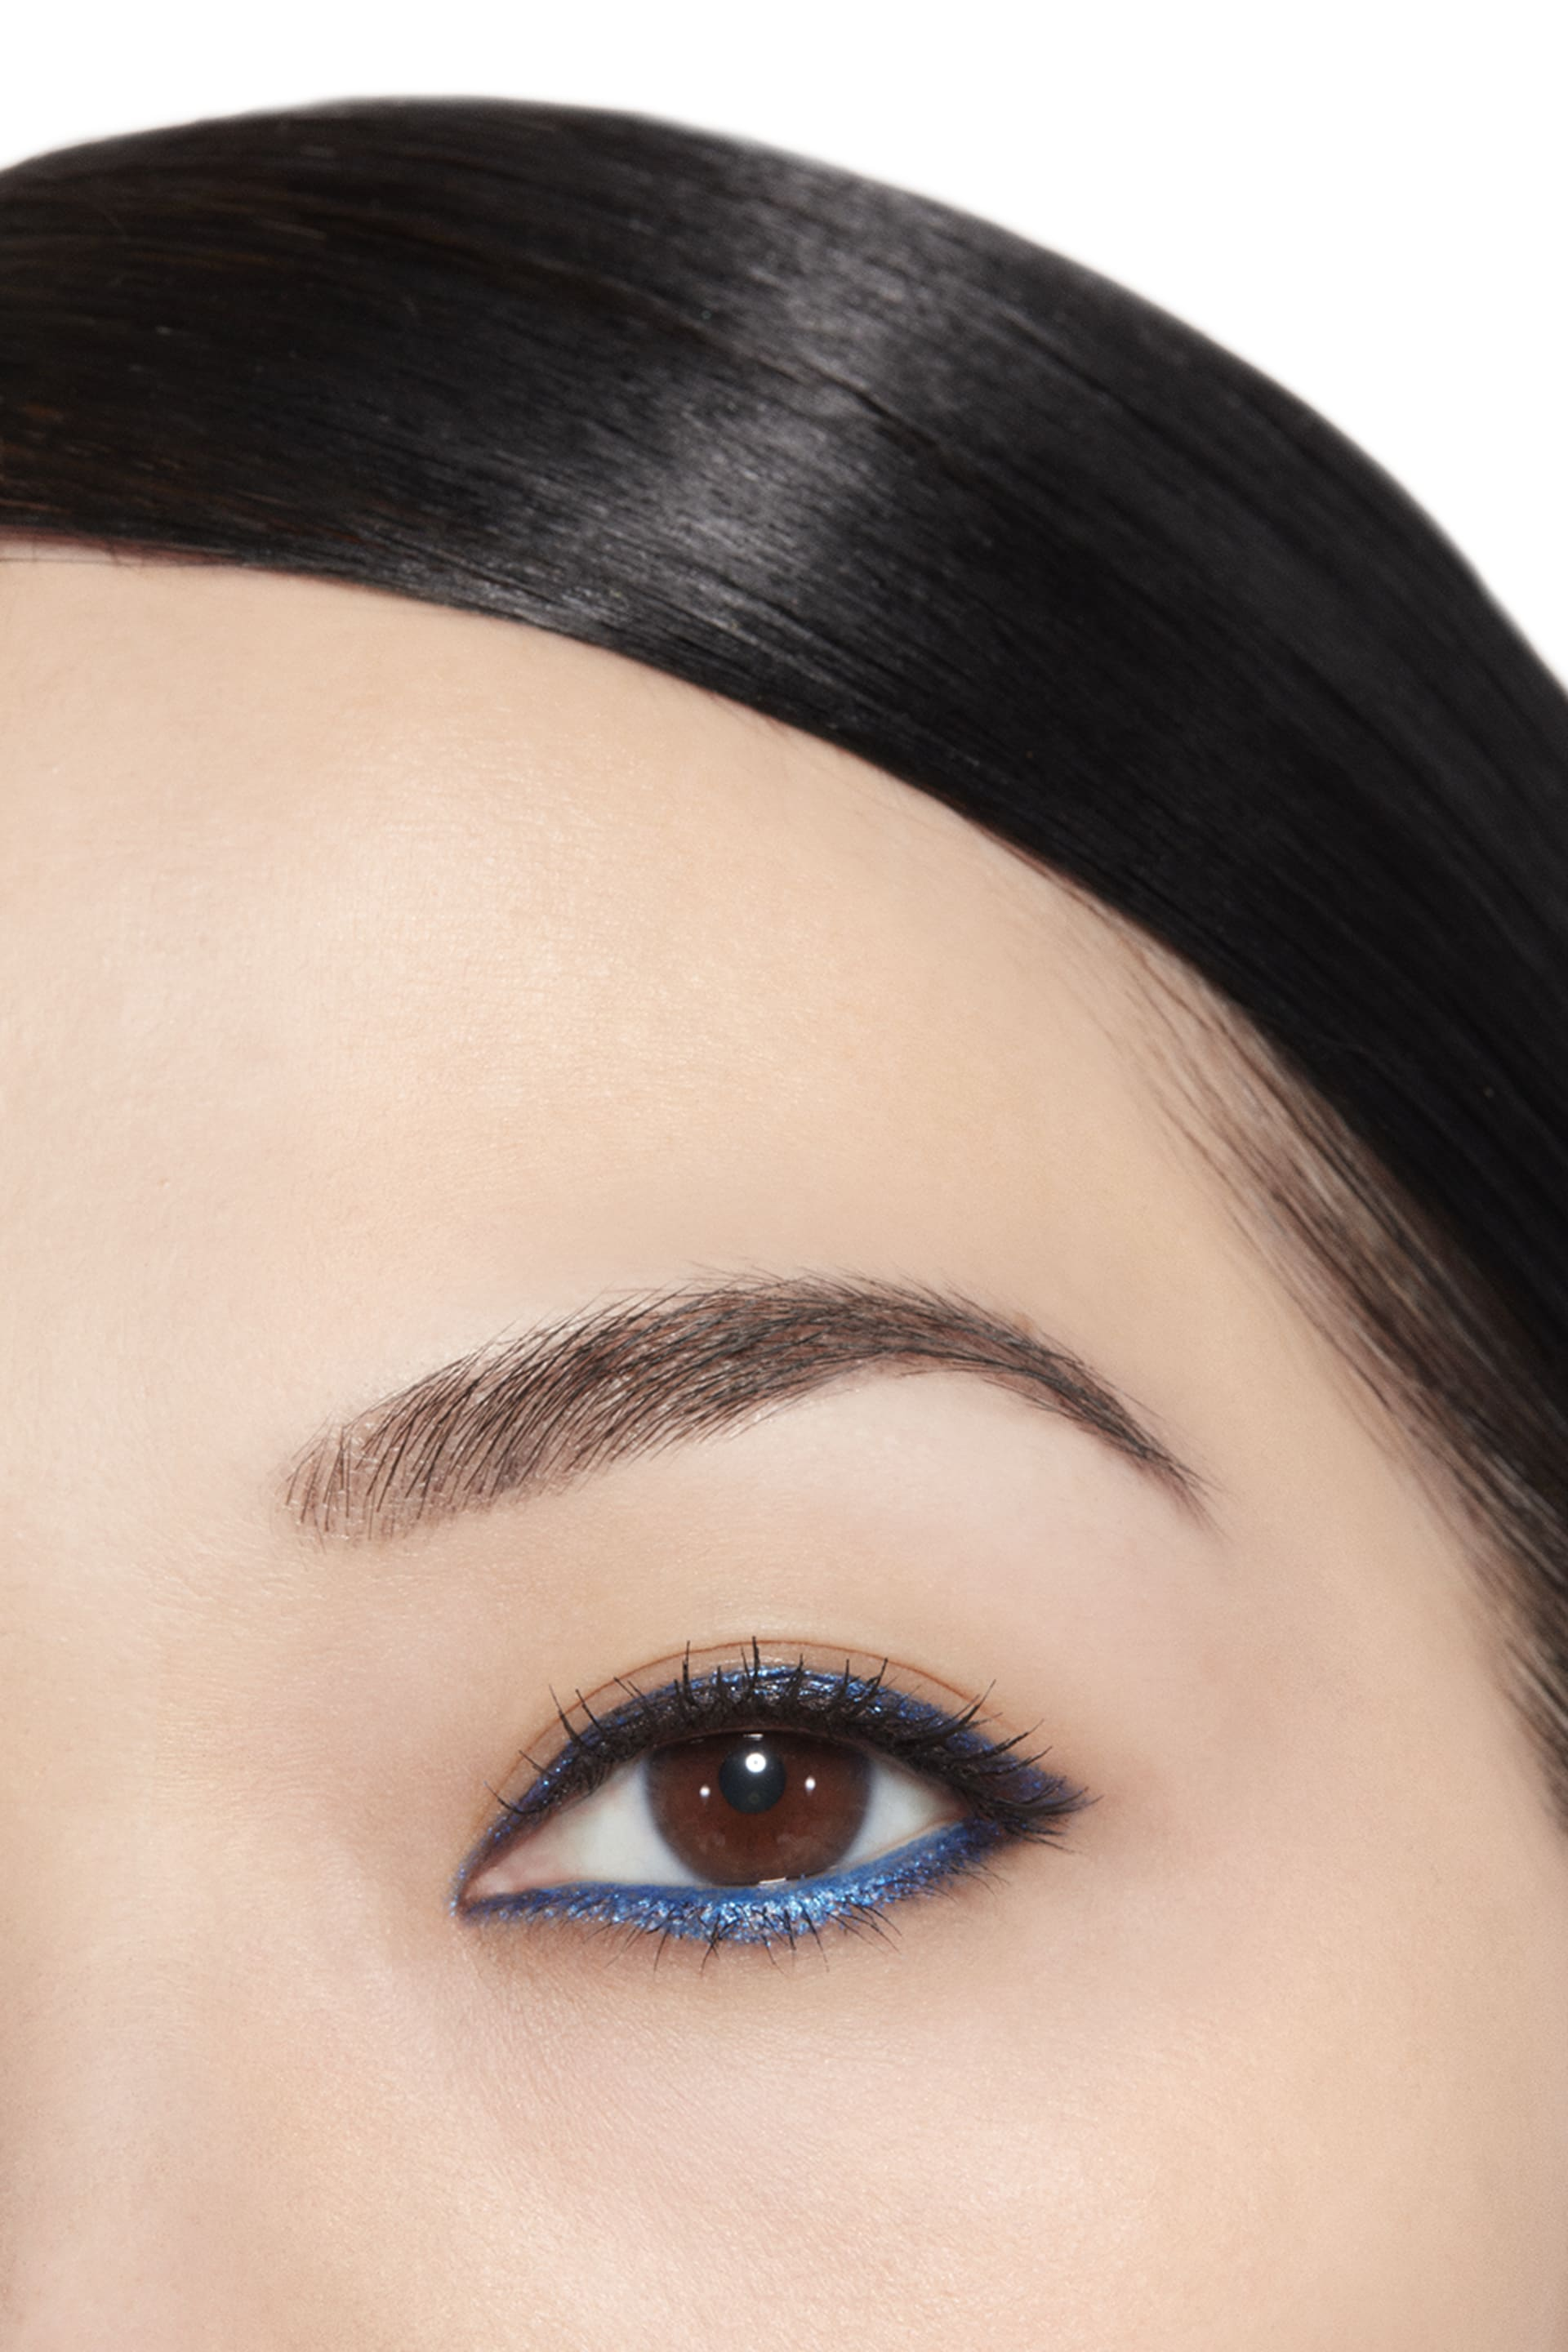 Application makeup visual 1 - STYLO YEUX WATERPROOF 924 - FERVENT BLUE